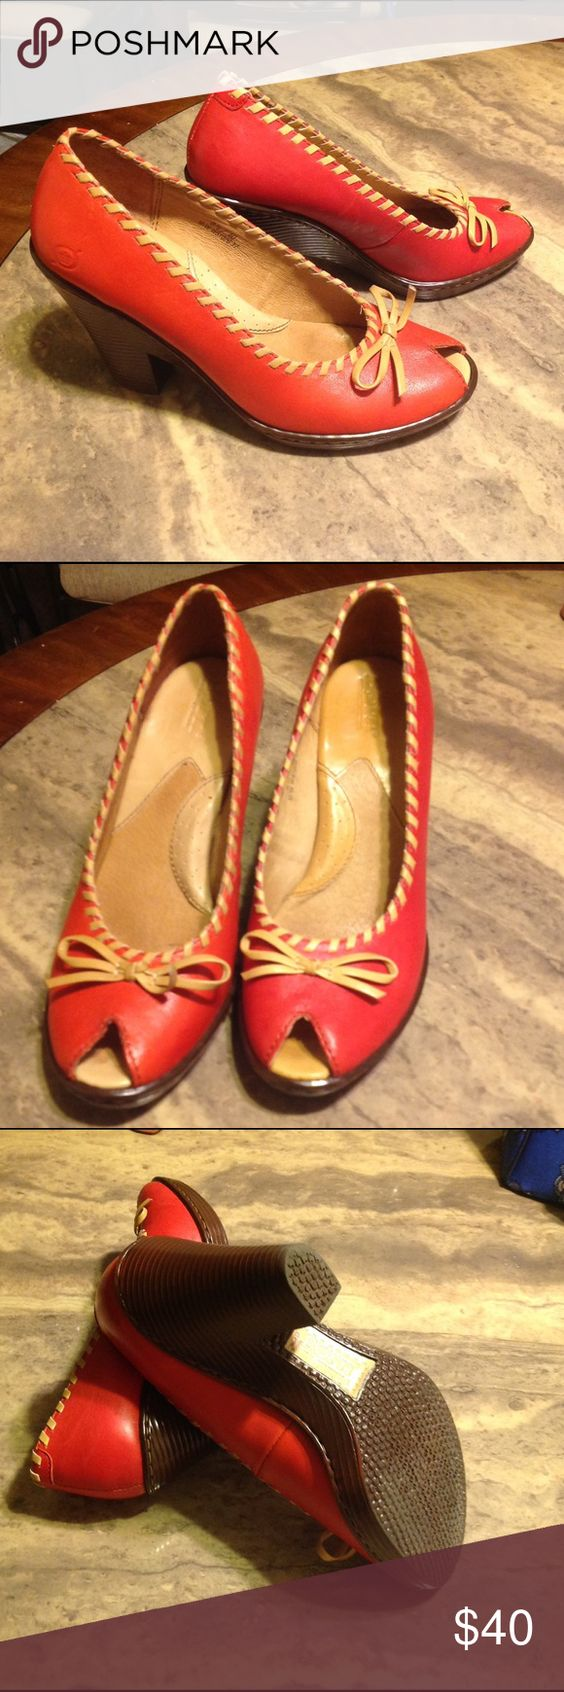 b.oc. by Born wedge heels Cute leather wedge heels, with a peep toe and well maintained. b.o.c. Shoes Heels